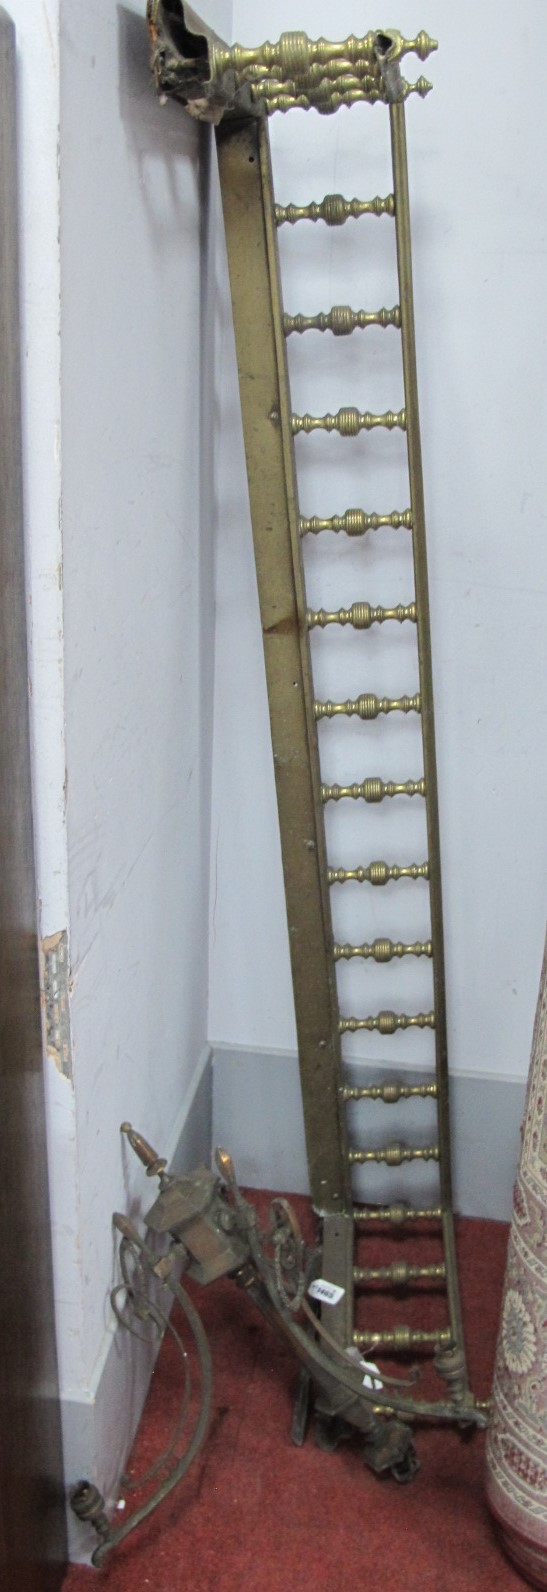 A XIX Century Brass Fender, with spindle supports, 153cm wide, plated early XX Century ceiling